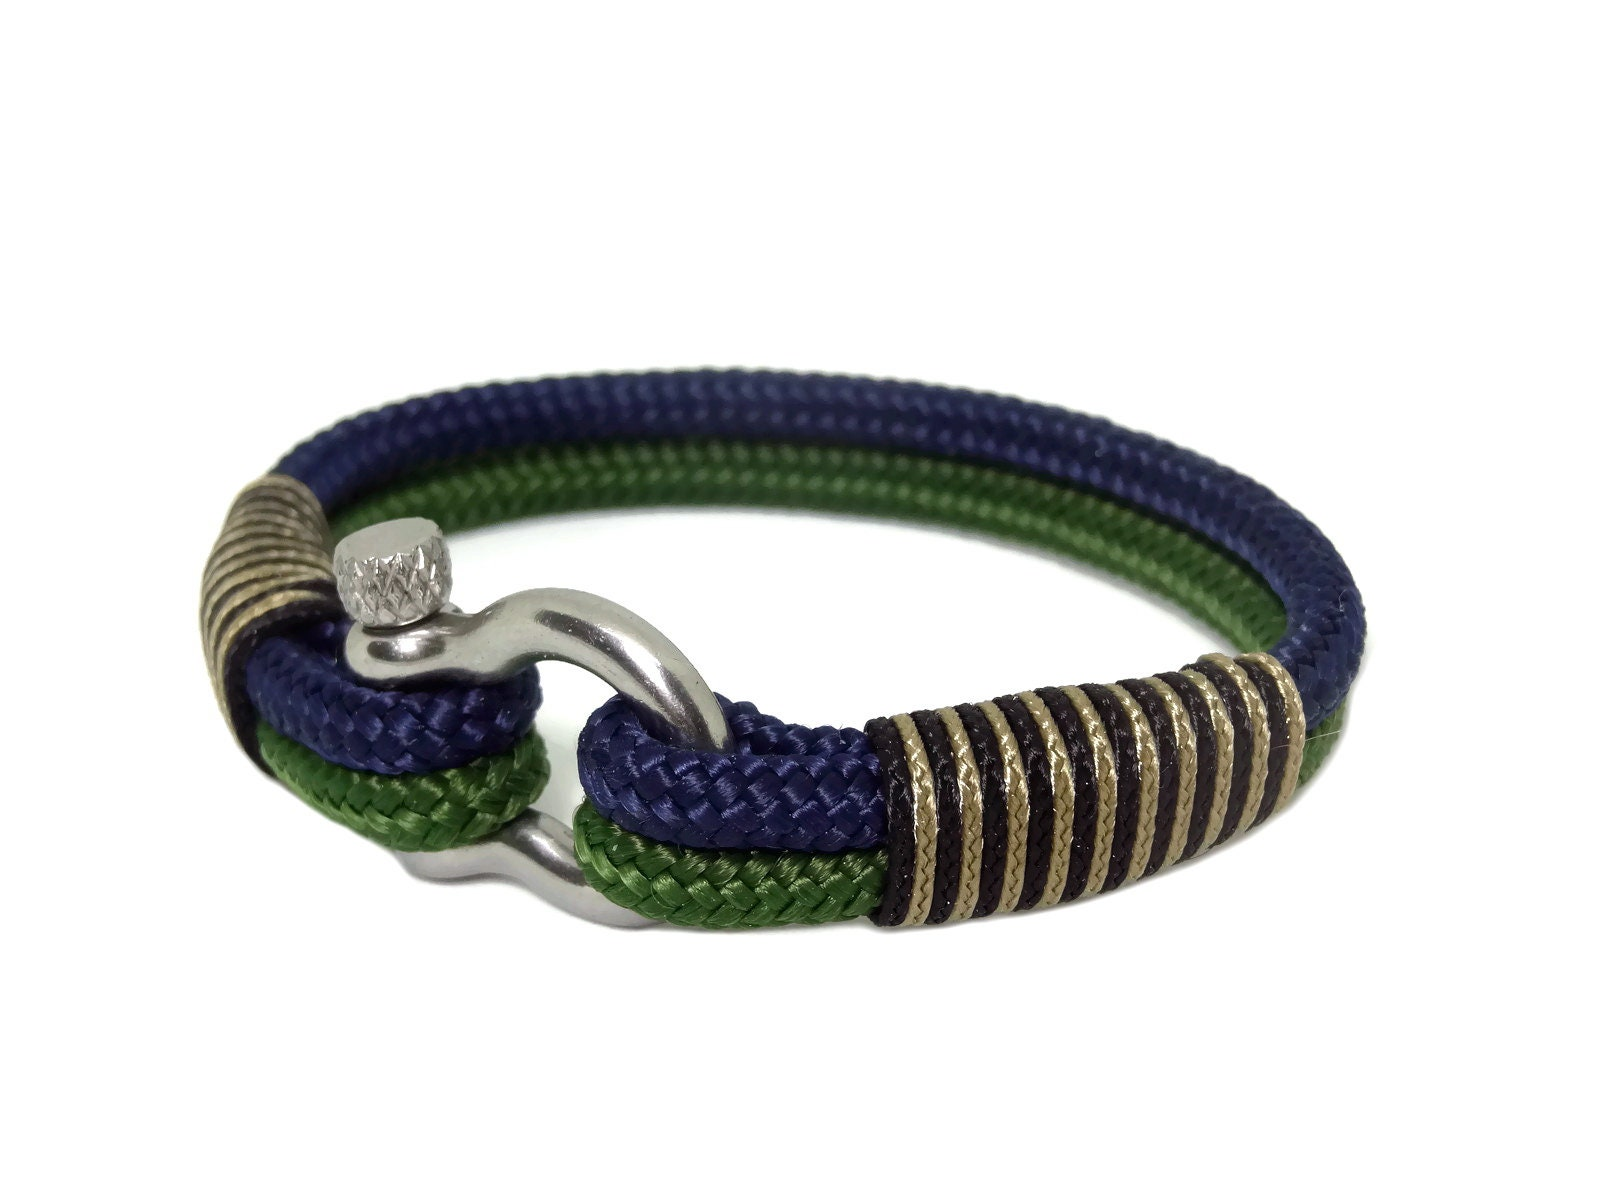 thecolorbars paracord sailing rope bracelet nautical braided ordinary cord